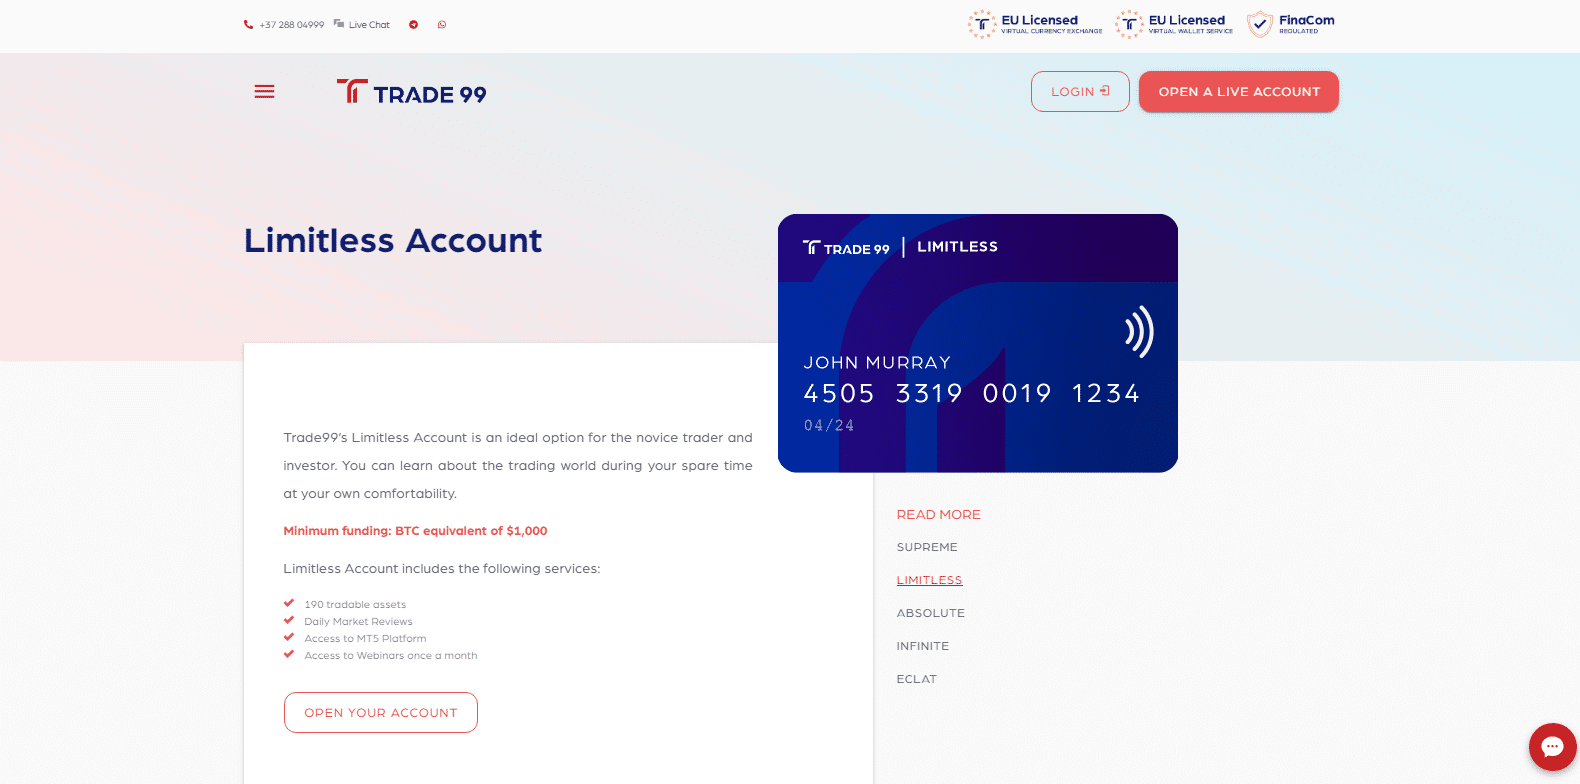 Limitless Account